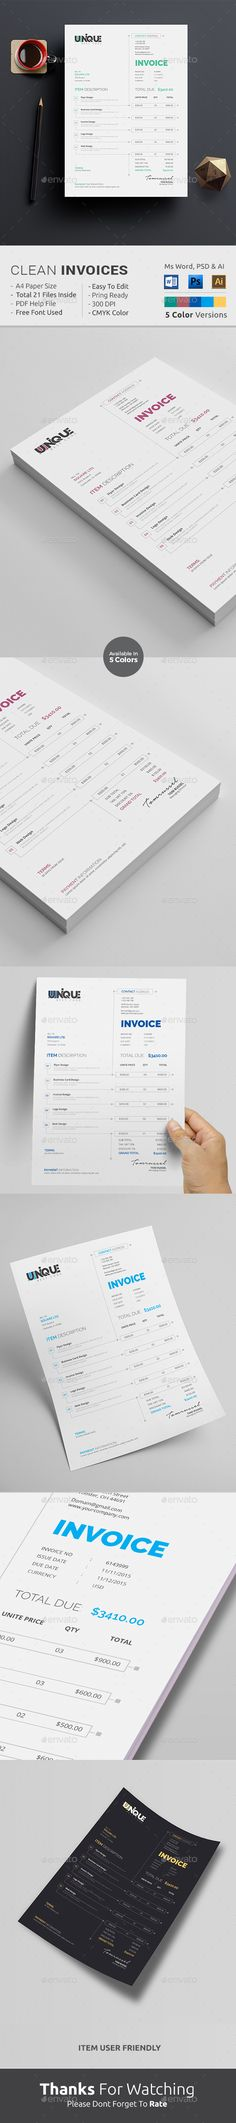 Invoice Template Business And Graphics